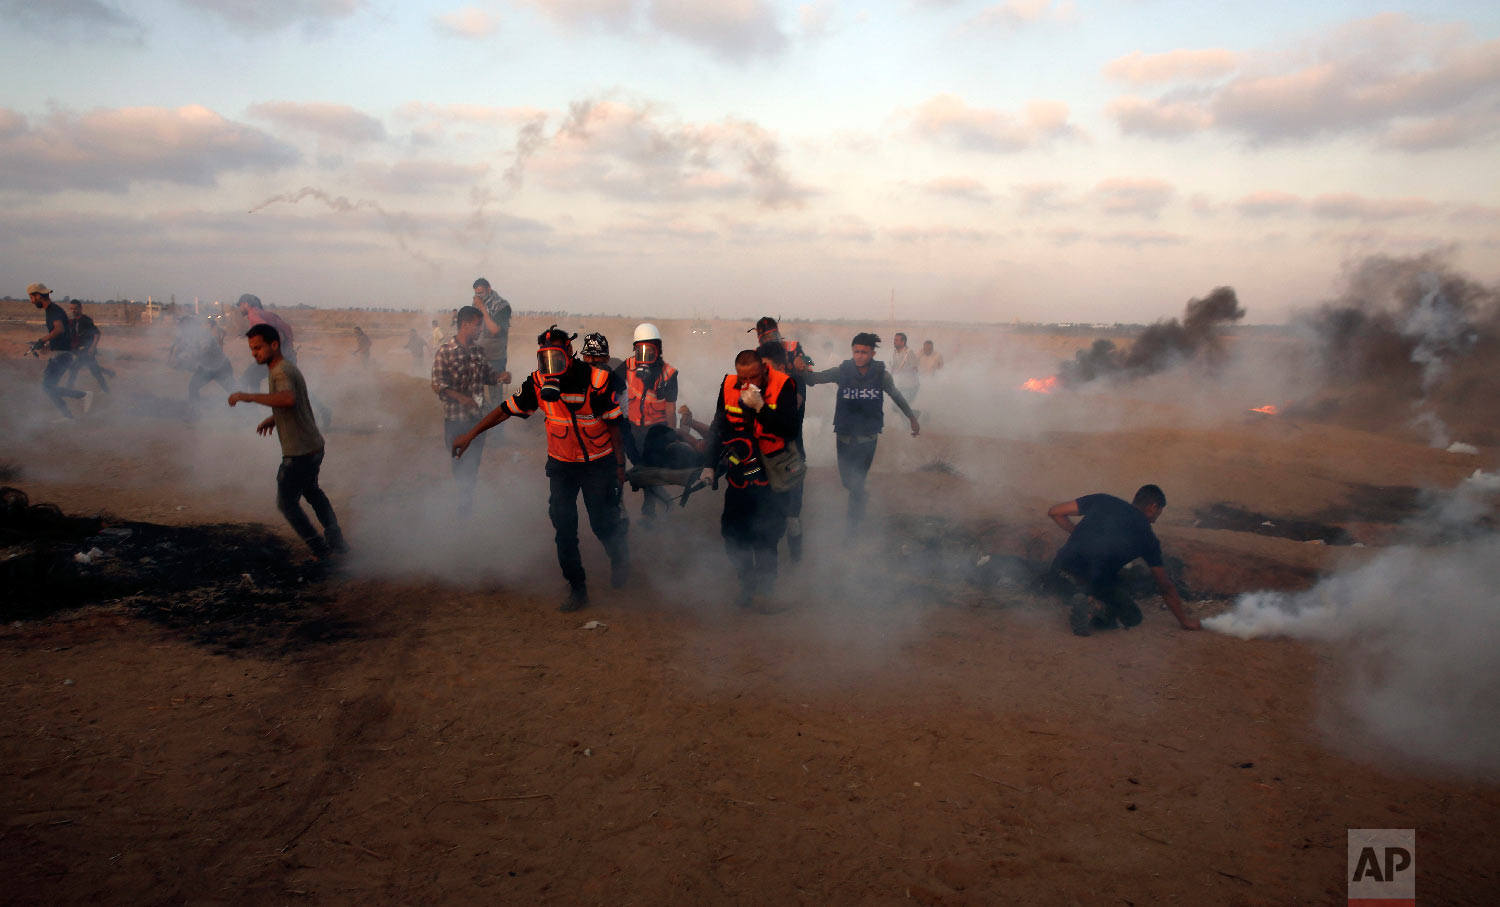 Medics evacuate a wounded youth while others run to cover from teargas fired by Israeli troops near the Gaza Strip border with Israel, during a protest east of Khan Younis, southern Gaza Strip, Friday, Aug. 24, 2018. (AP Photo/Adel Hana)